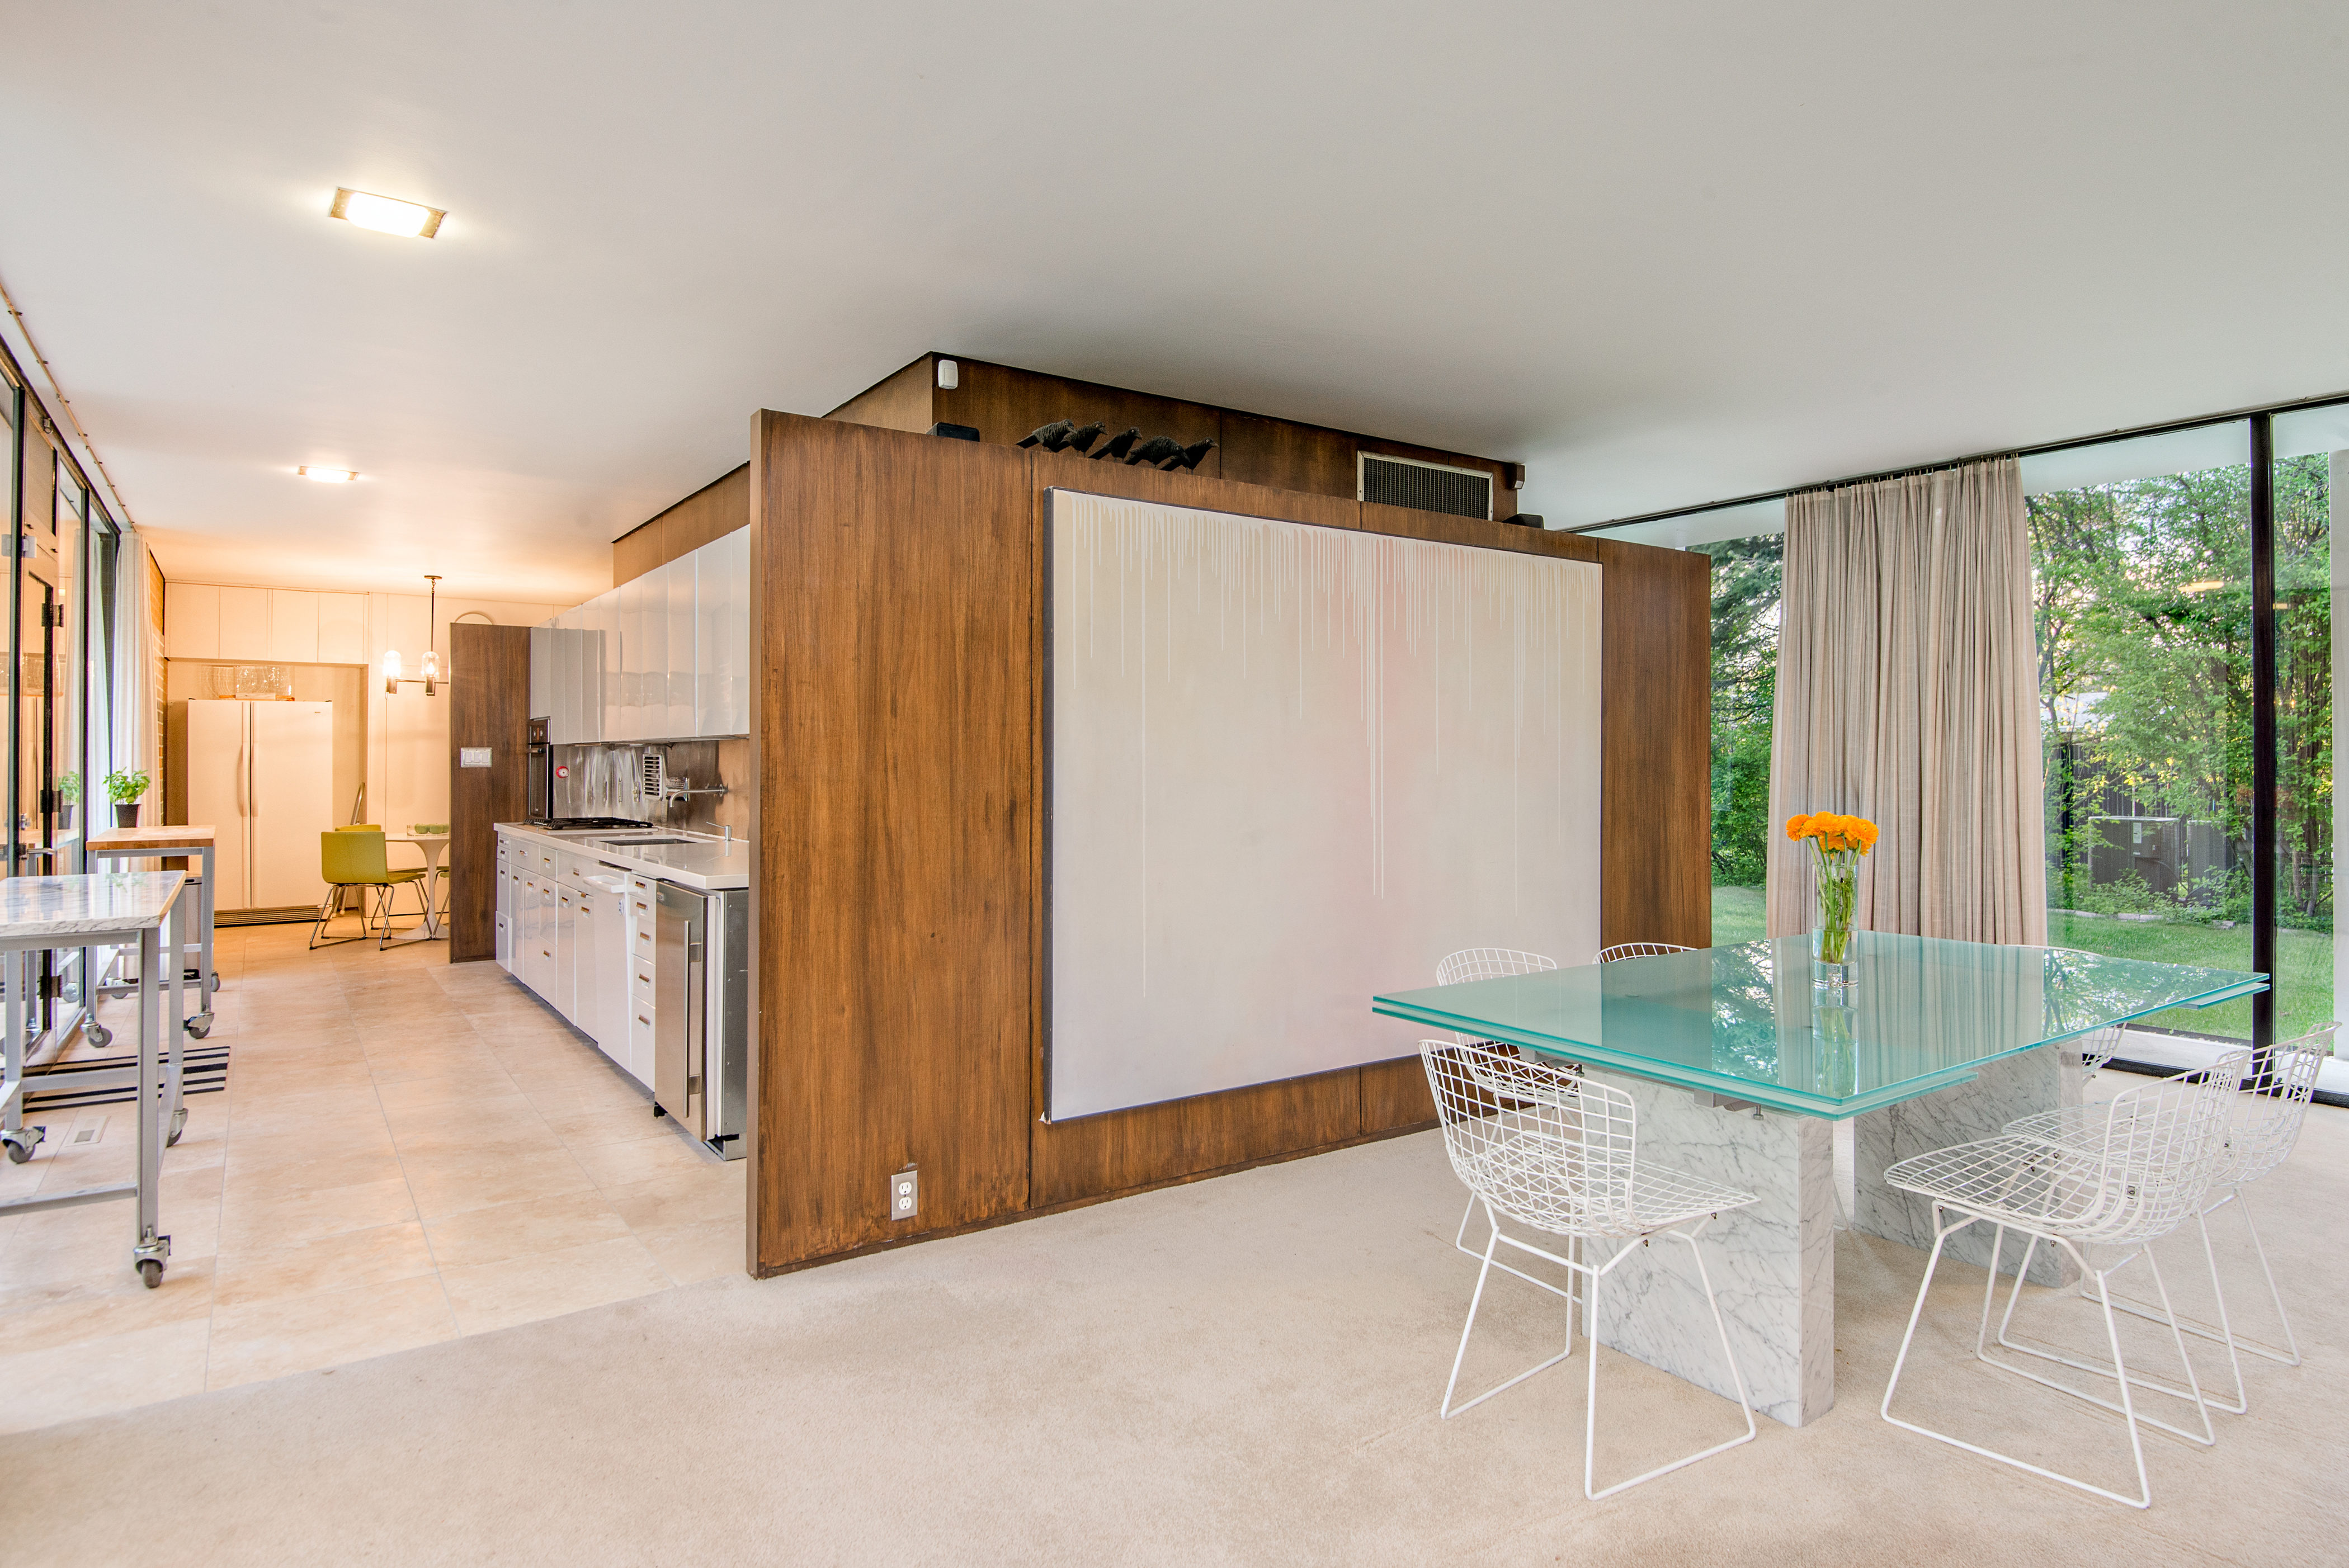 ... Midcentury Home Architect S Own Glass Box Gem Asks 825k Holladay House  Bed And Breakfast In Orange Virginia ...